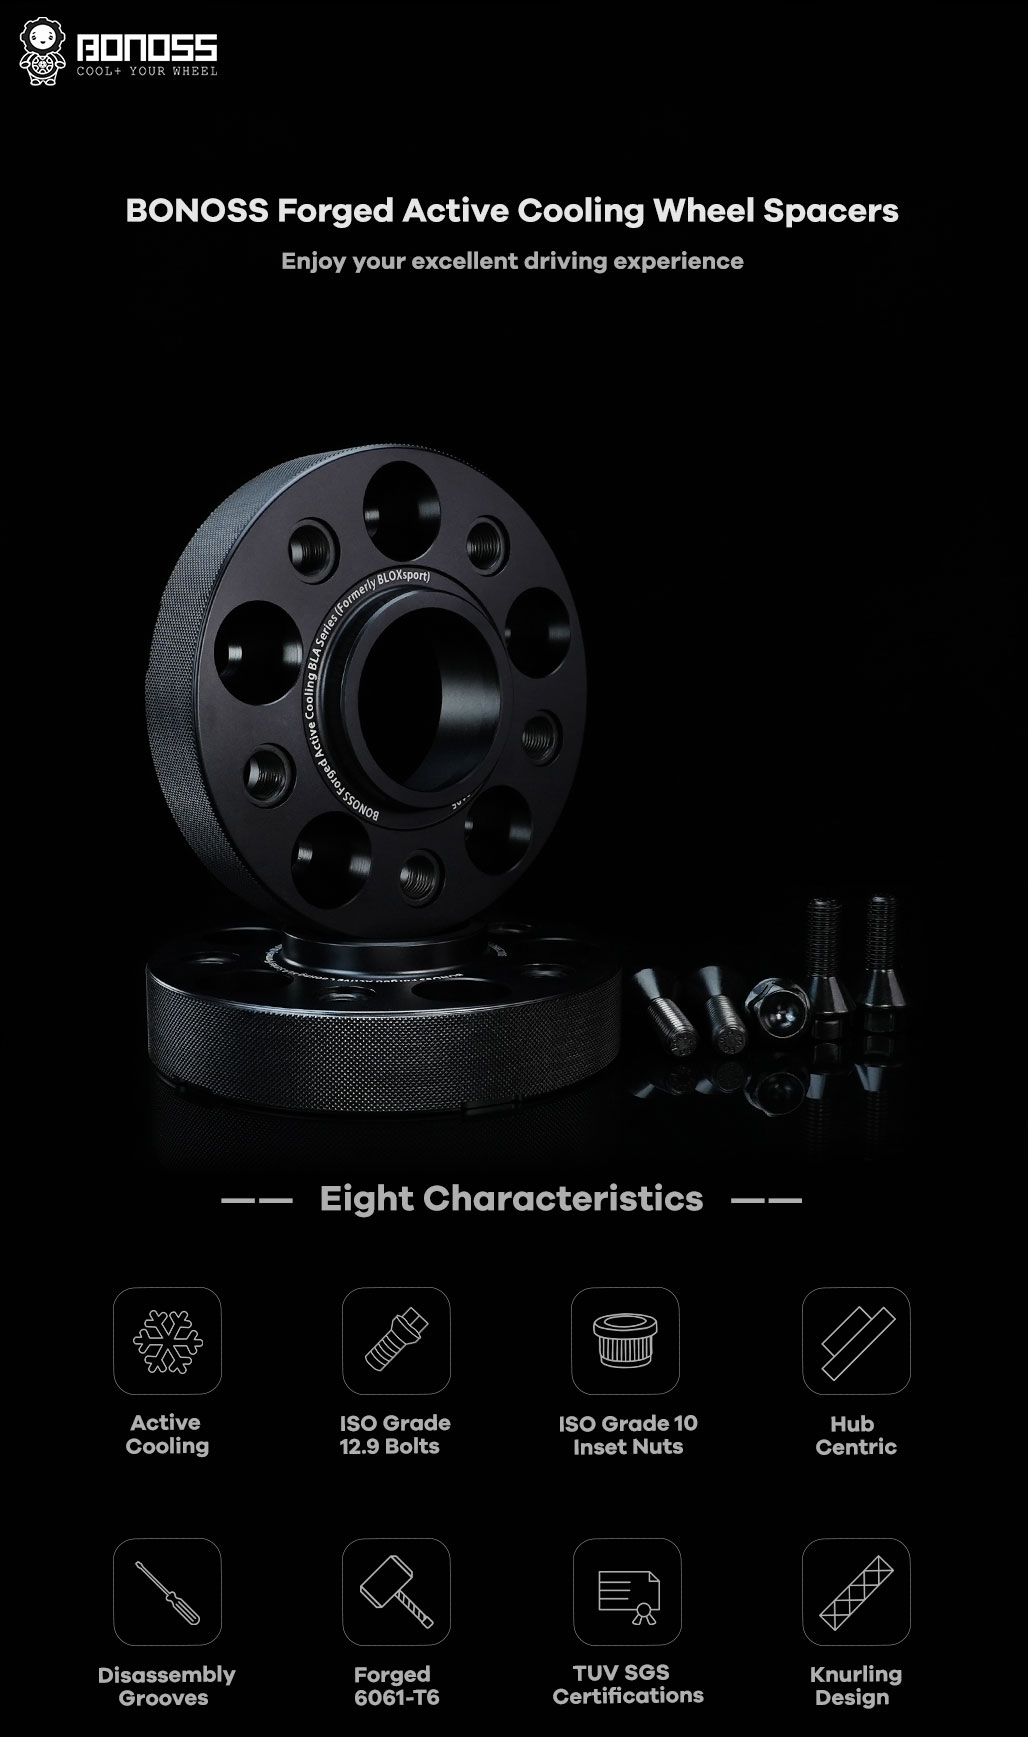 BONOSS-forged-active-cooling-wheel-spacer-OPEL-Grandland-X-5x108-65.1-M12x1.25-6061T6-by-grace-3